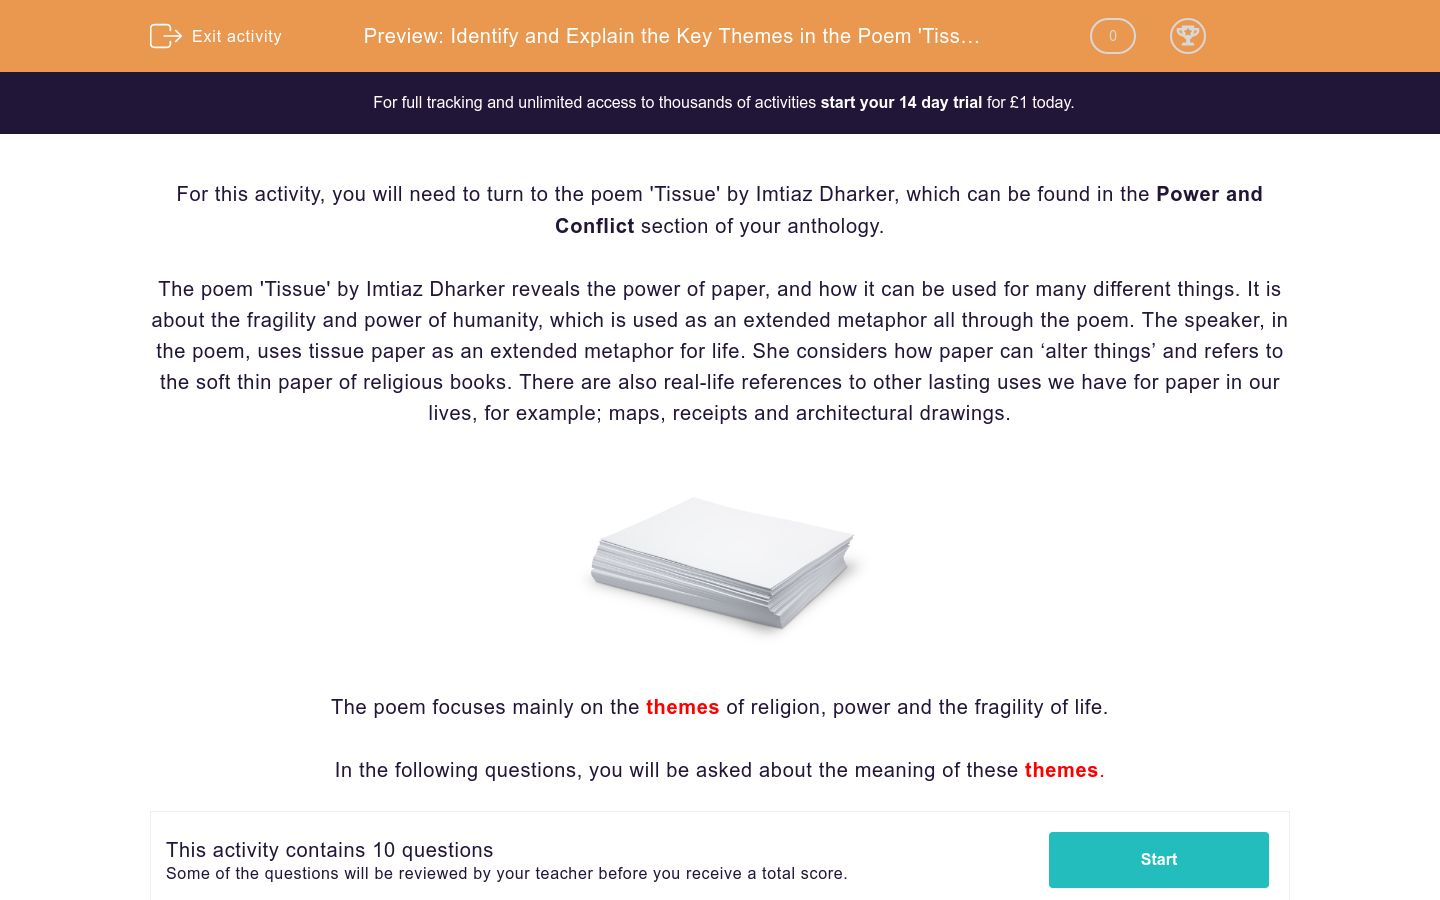 'Identify and Explain the Key Themes in the Poem 'Tissue' by Imtiaz Dharker' worksheet